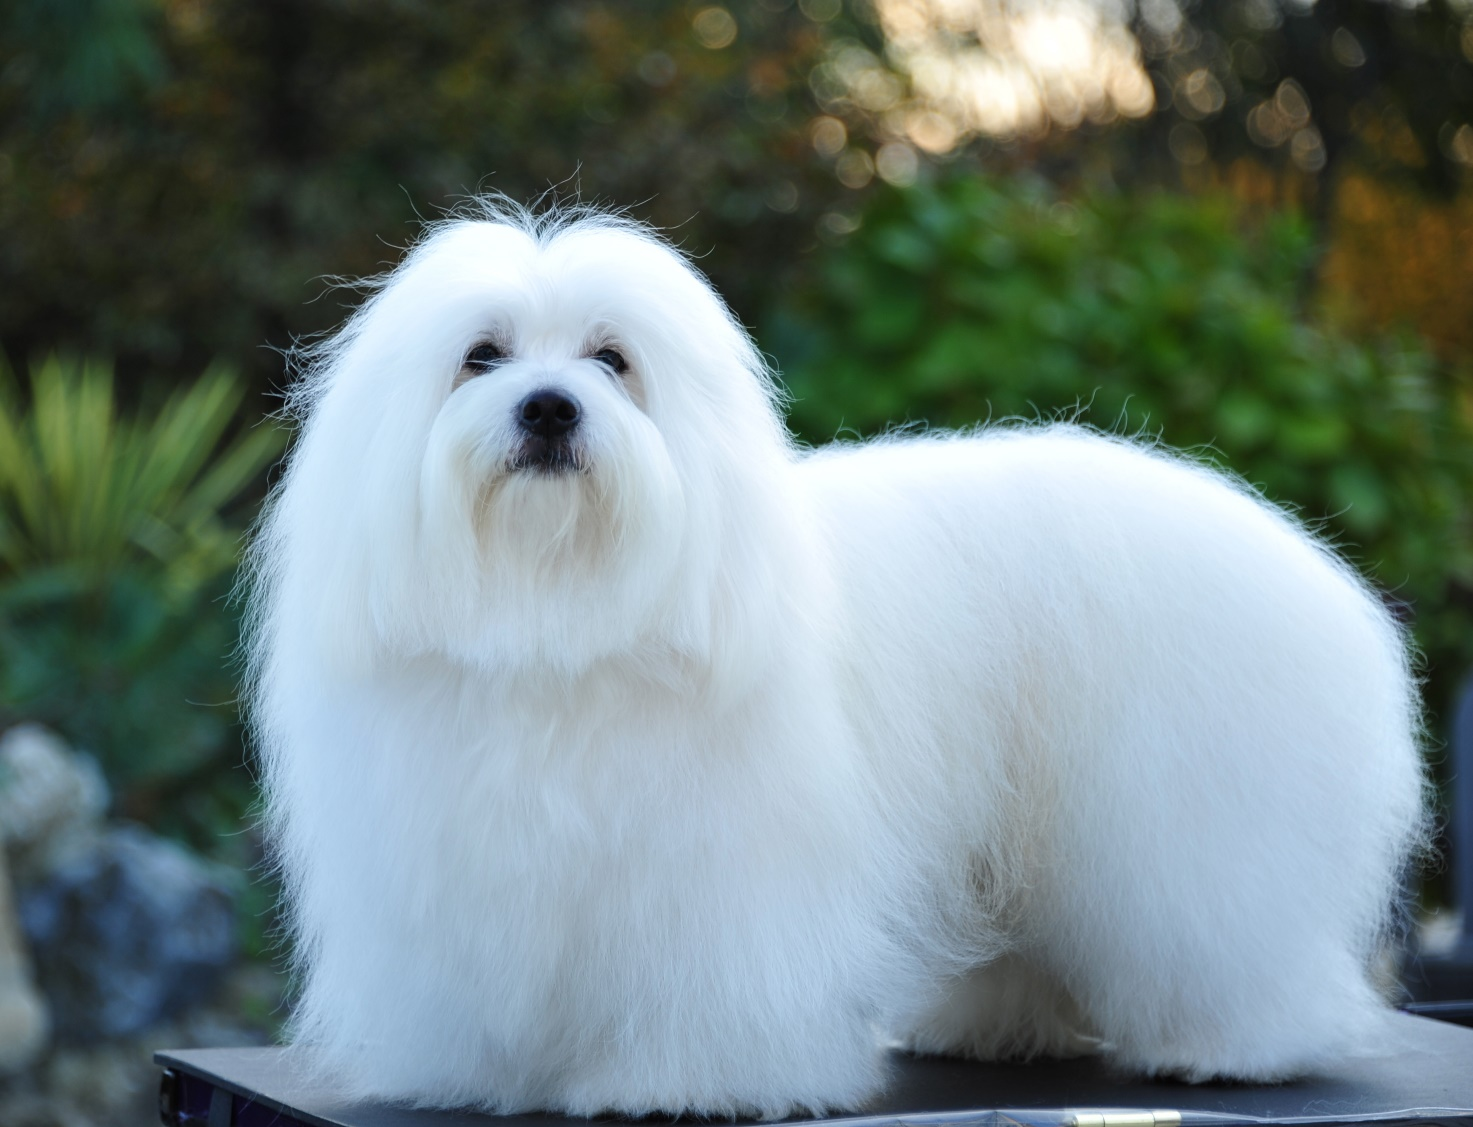 Coton de Tulear: A Lap Dog That's Sweet and Soft Like a Cotton Candy